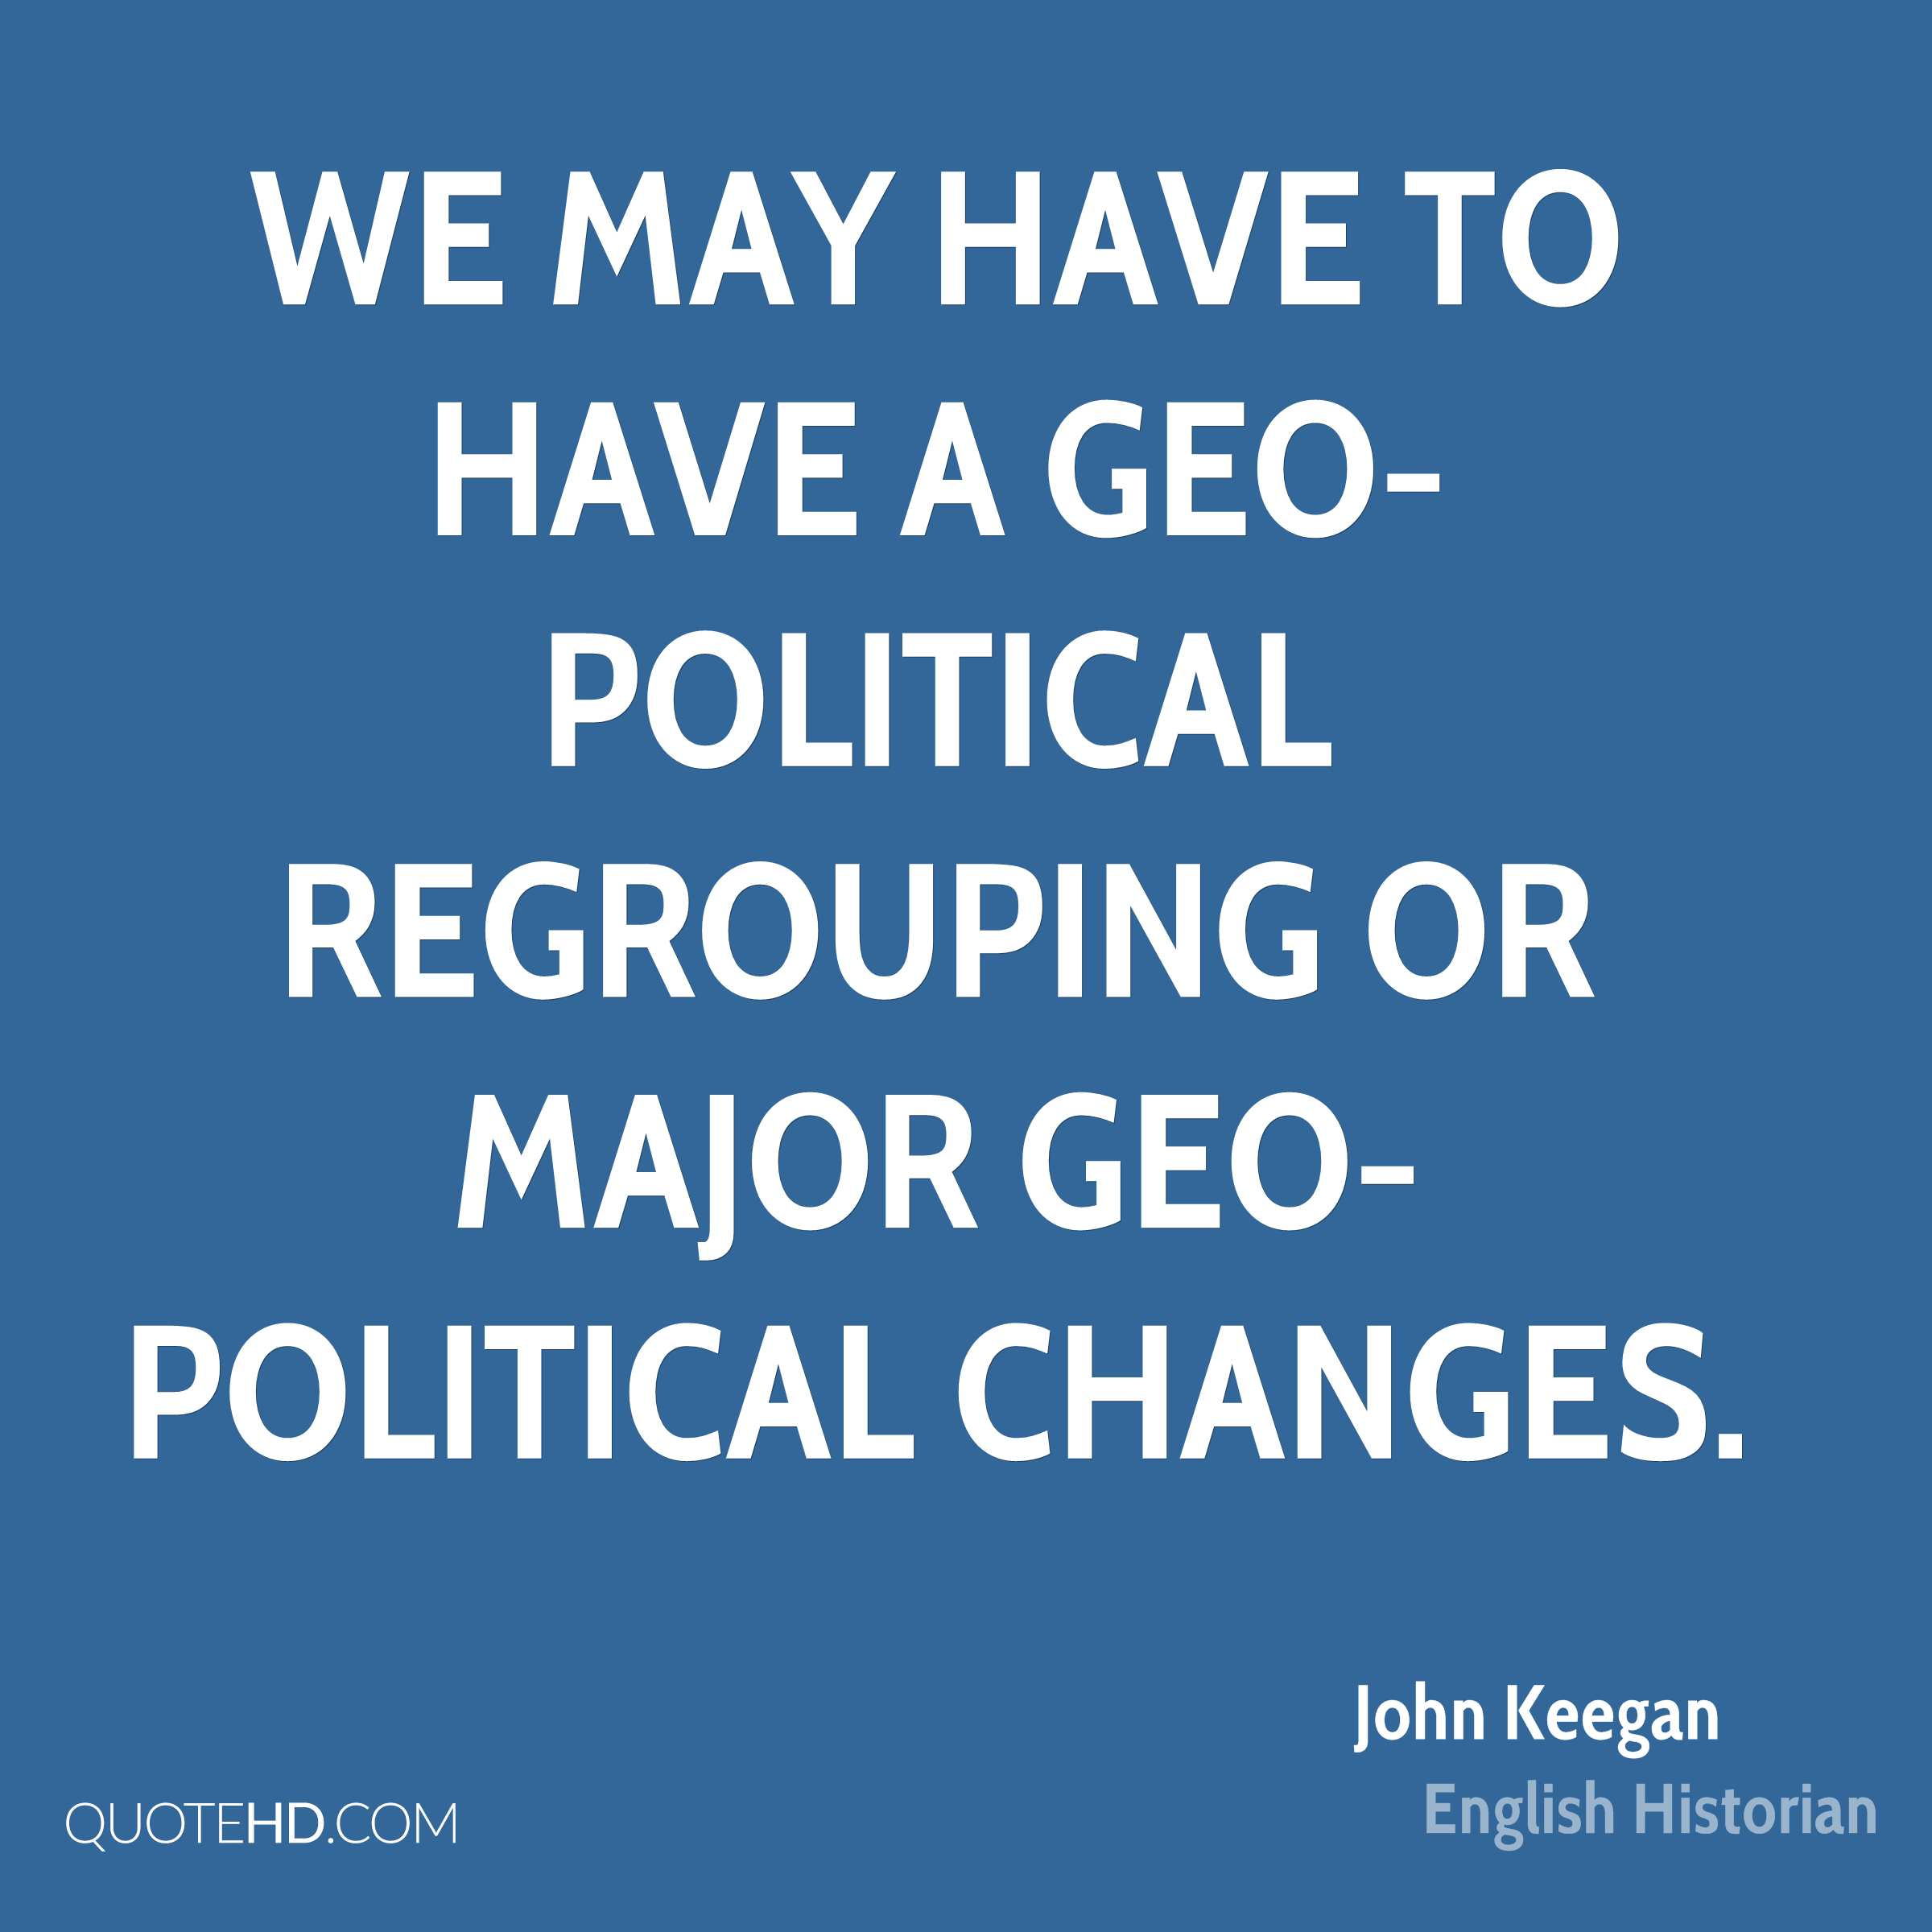 We may have to have a geo-political regrouping or major geo-political changes.